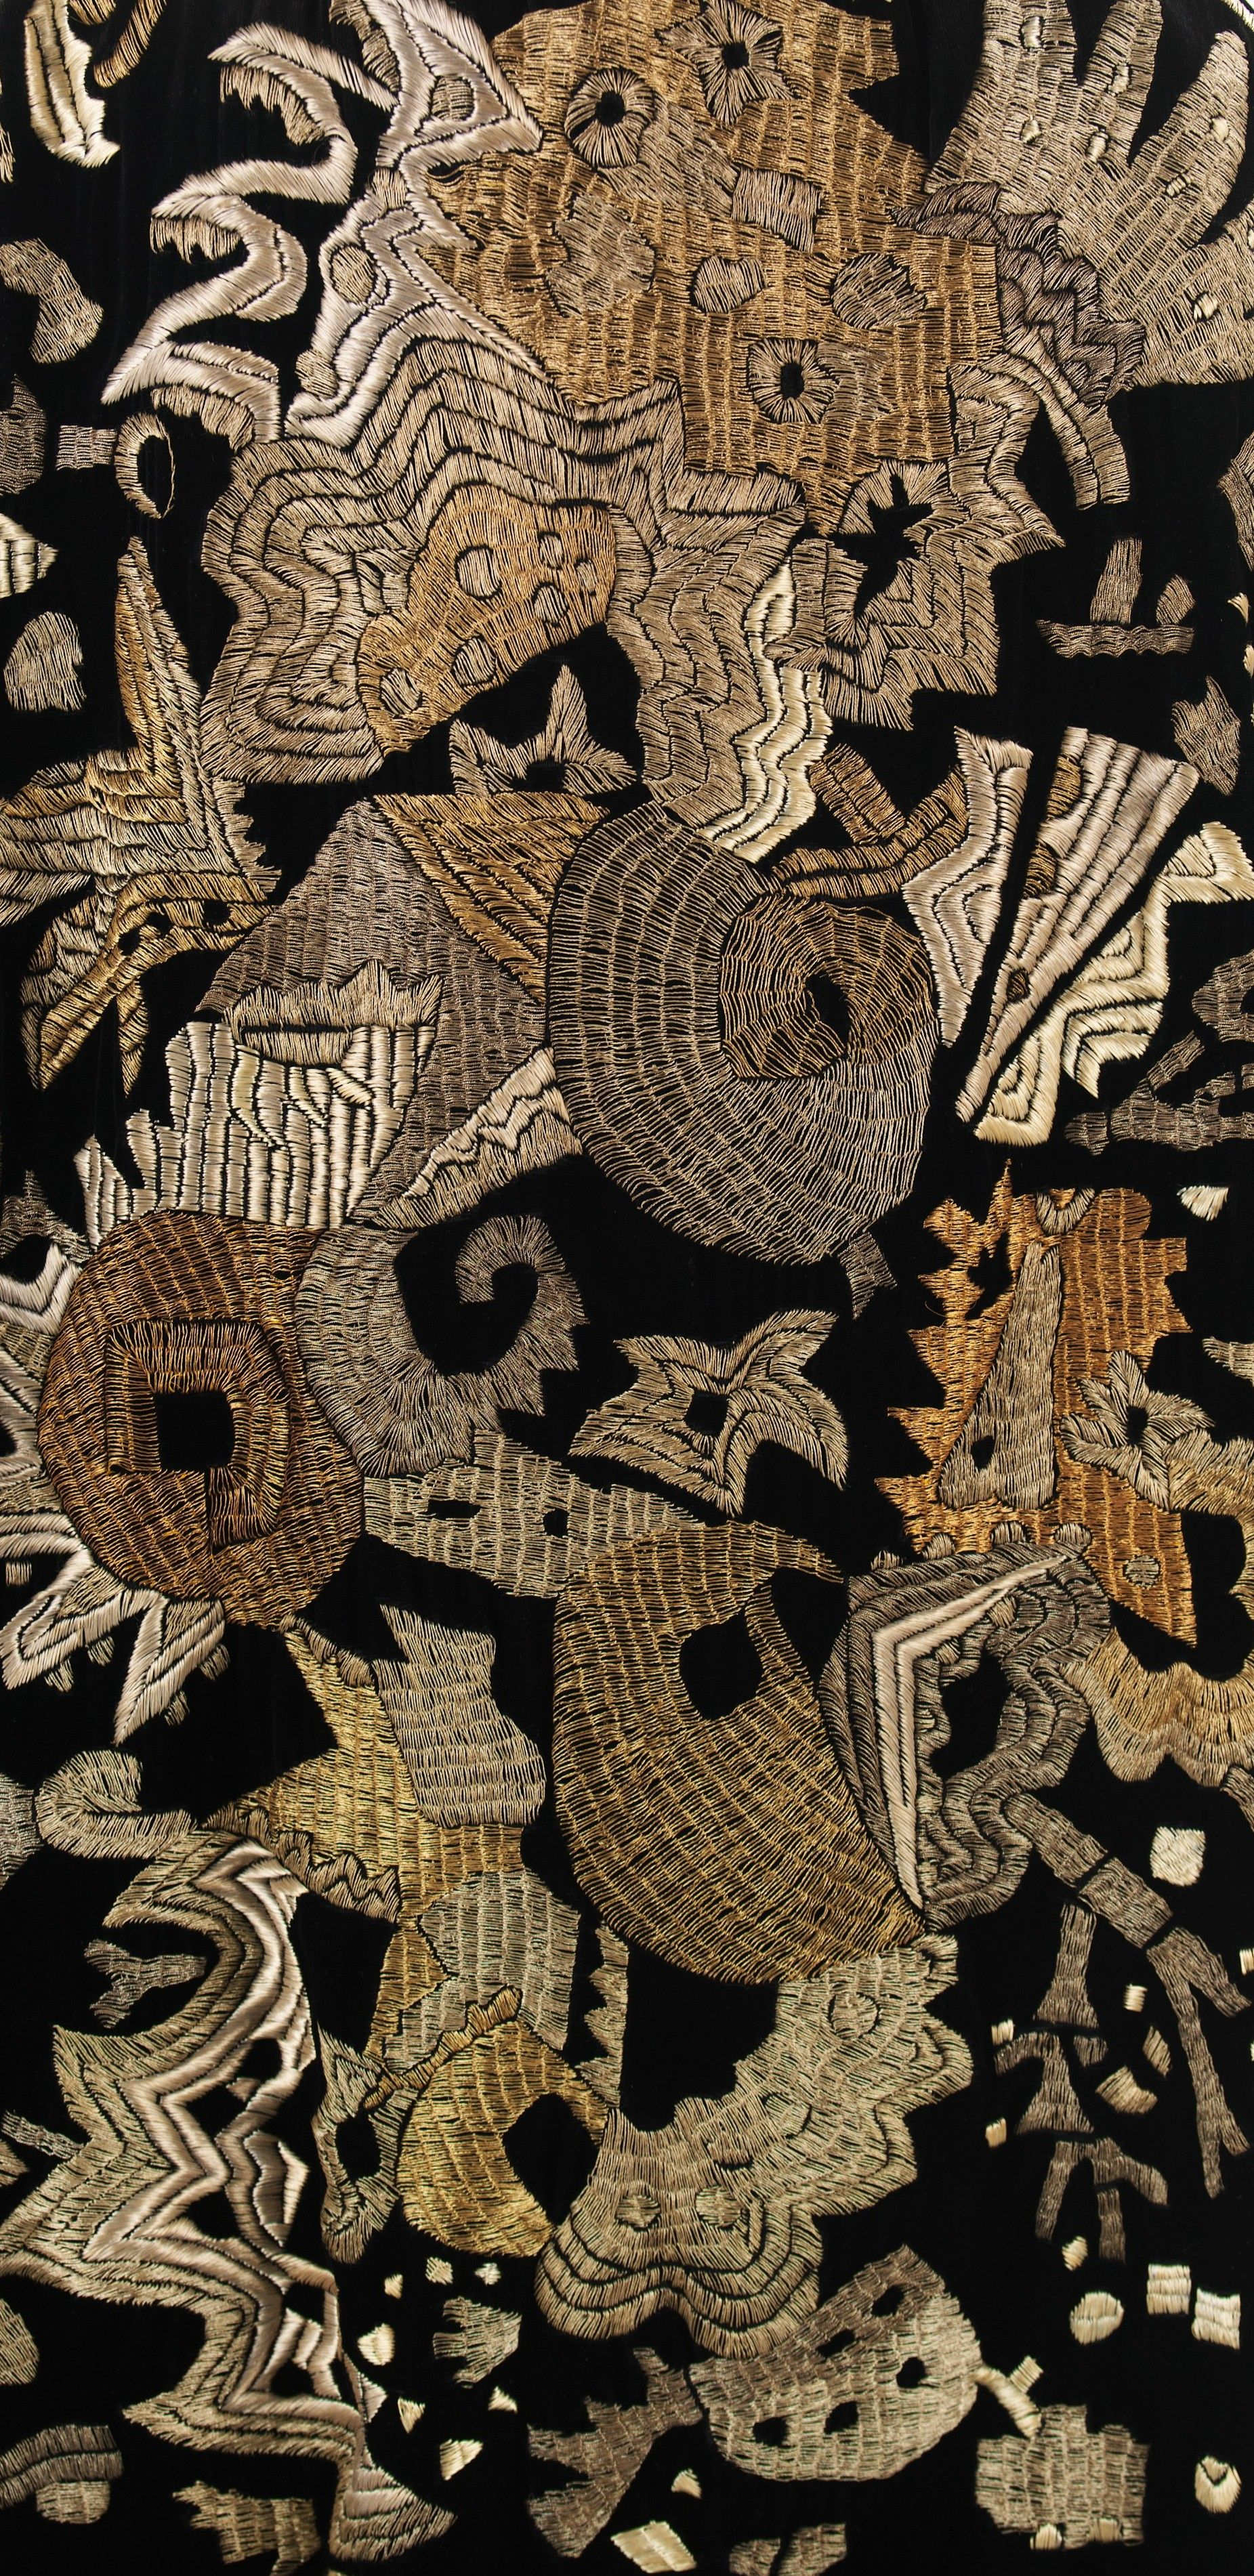 Evening cape_embroidery Designer: Textile attributed Sarah Lipska. Date: ca. 1925 Culture: French